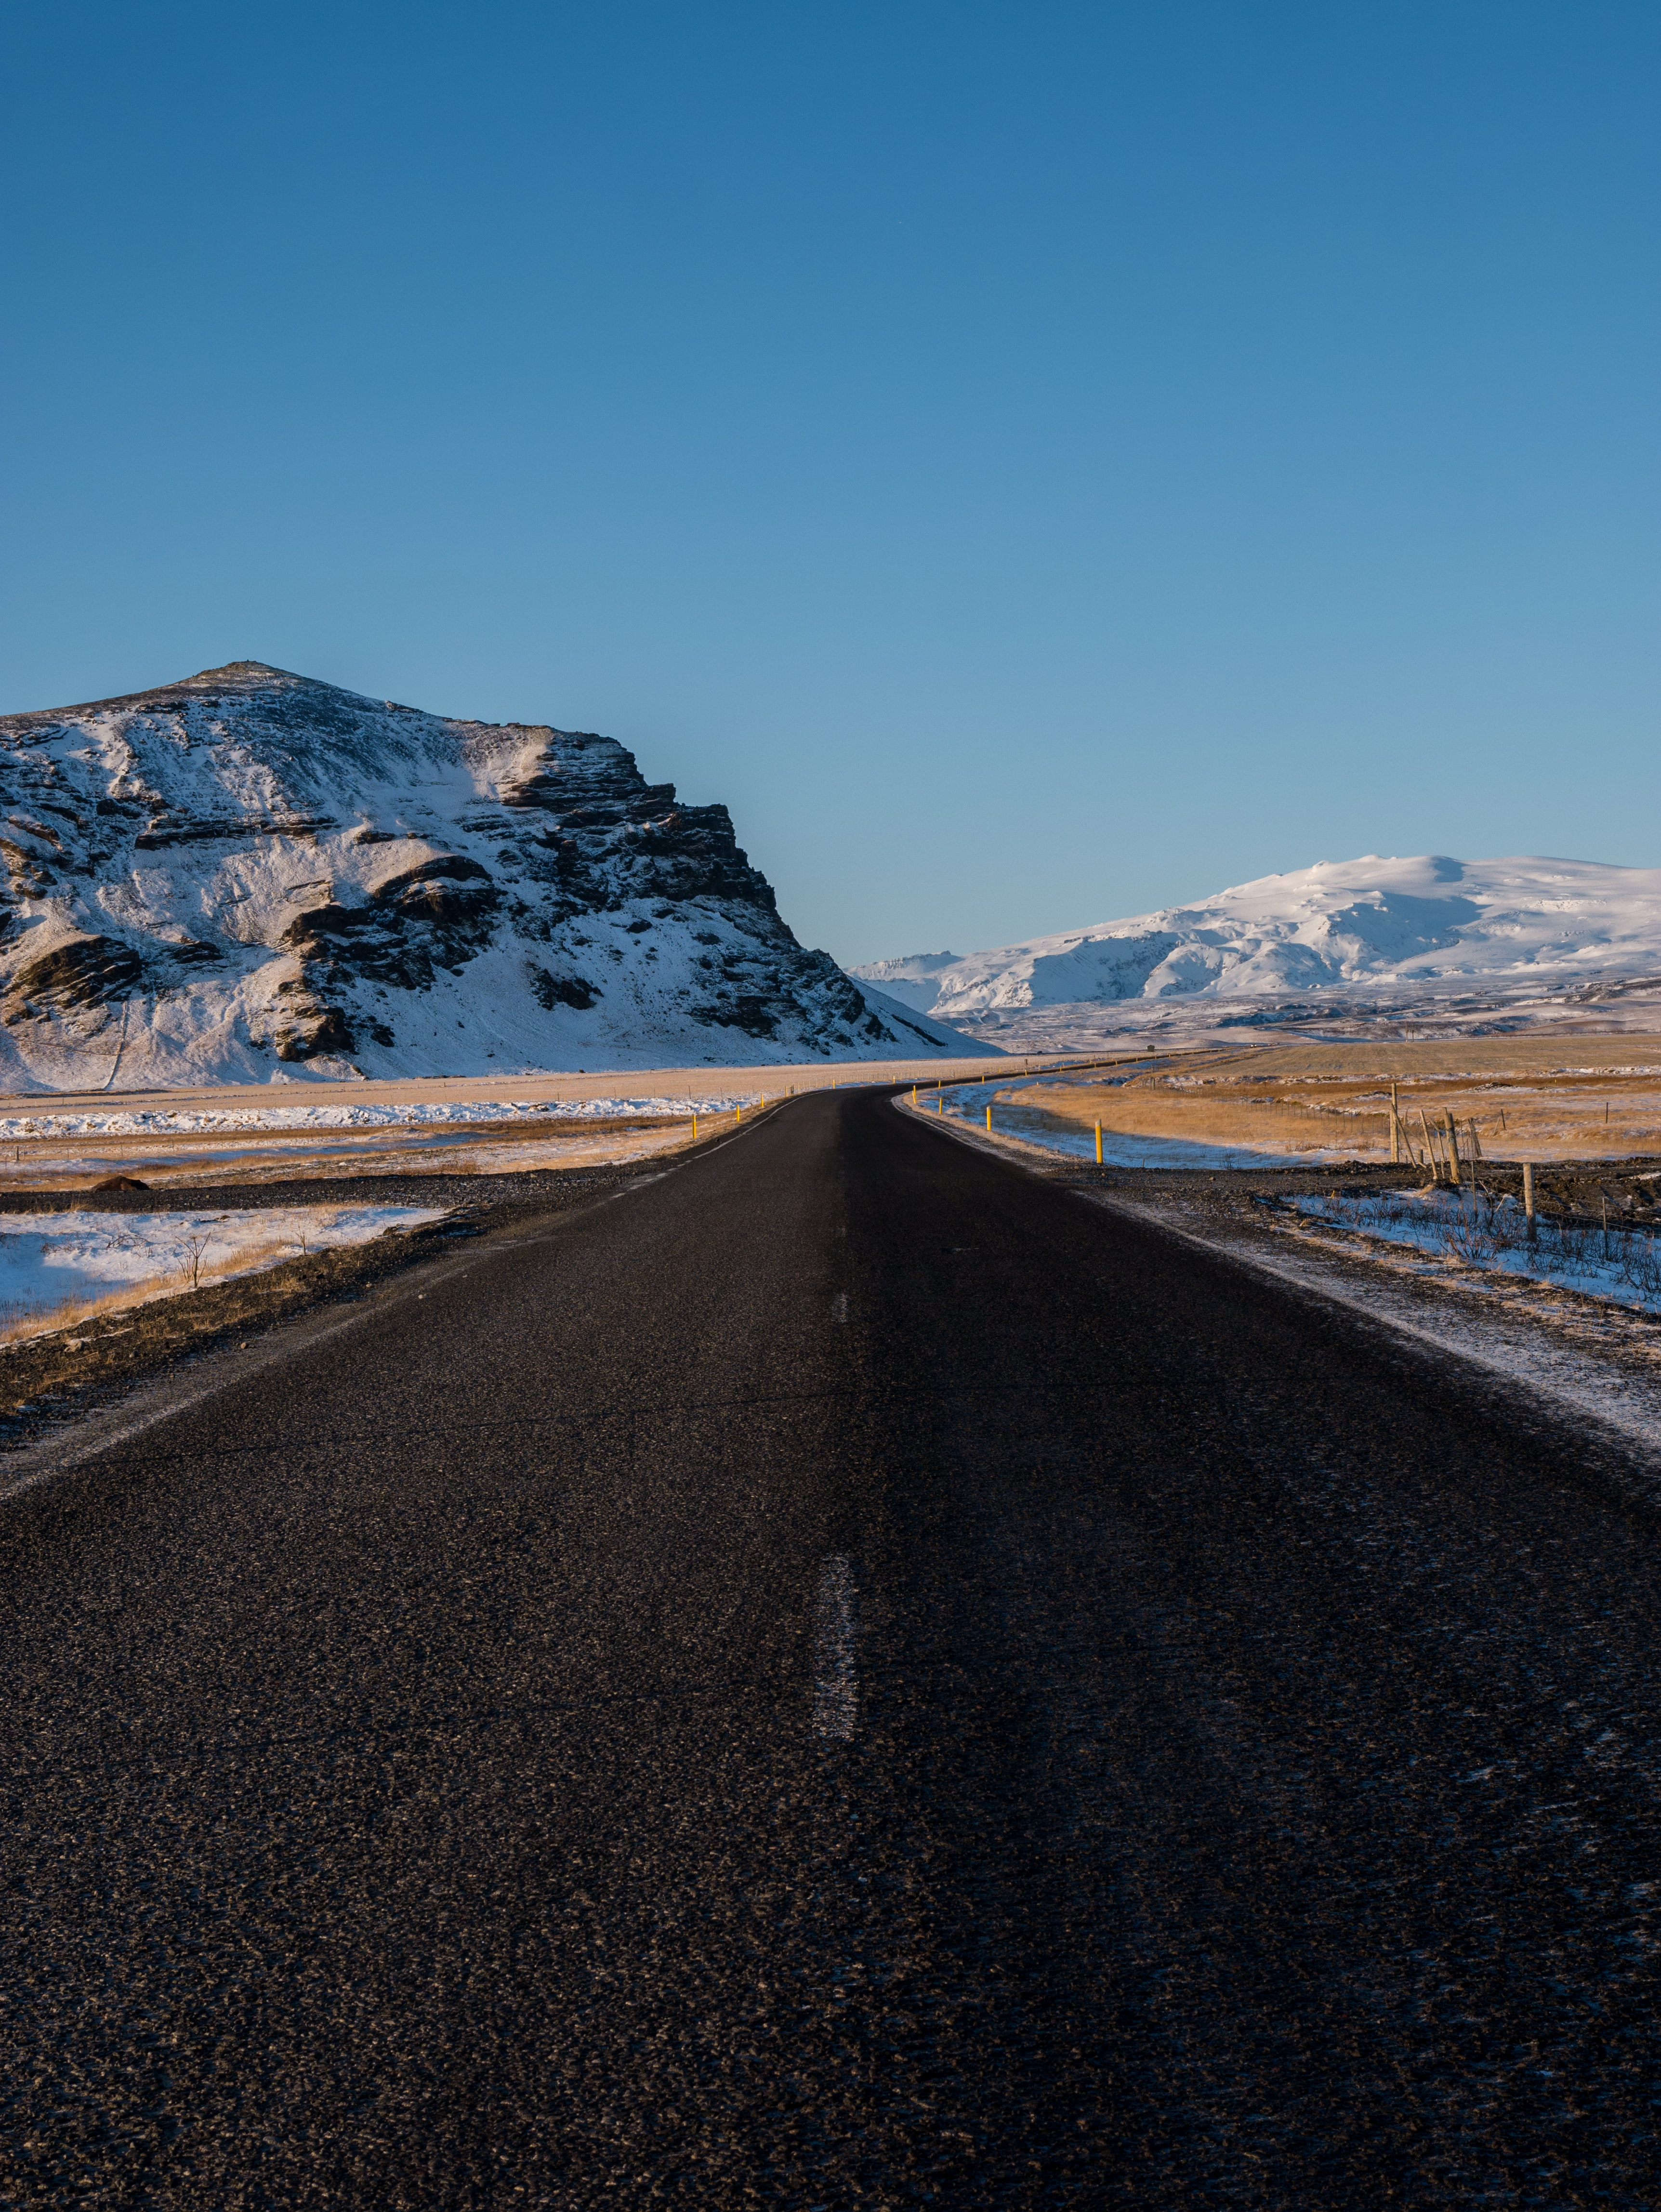 empty concrete road with snow capped mountain background